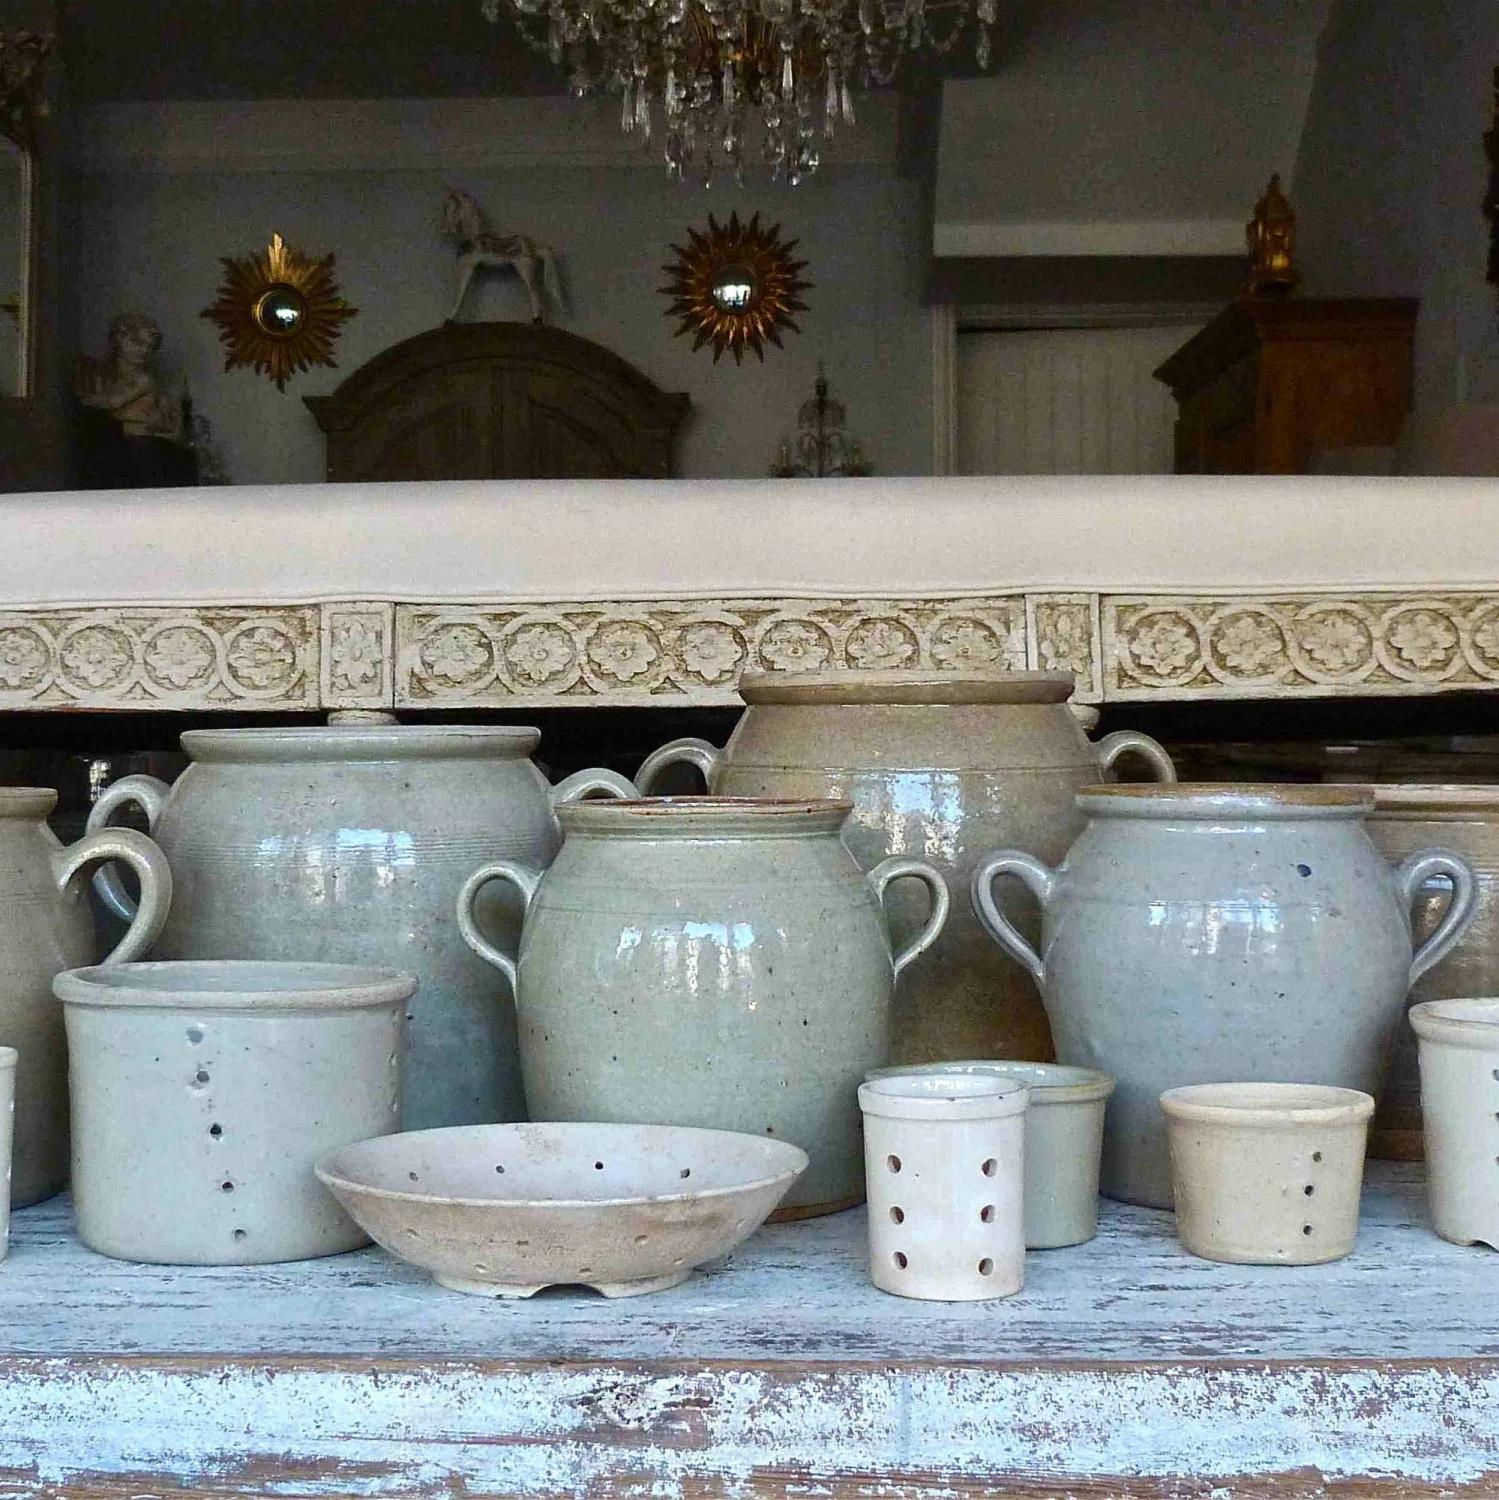 COLLECTION OF EARLY 19TH CENTURY BURGUNDY STONEWARE